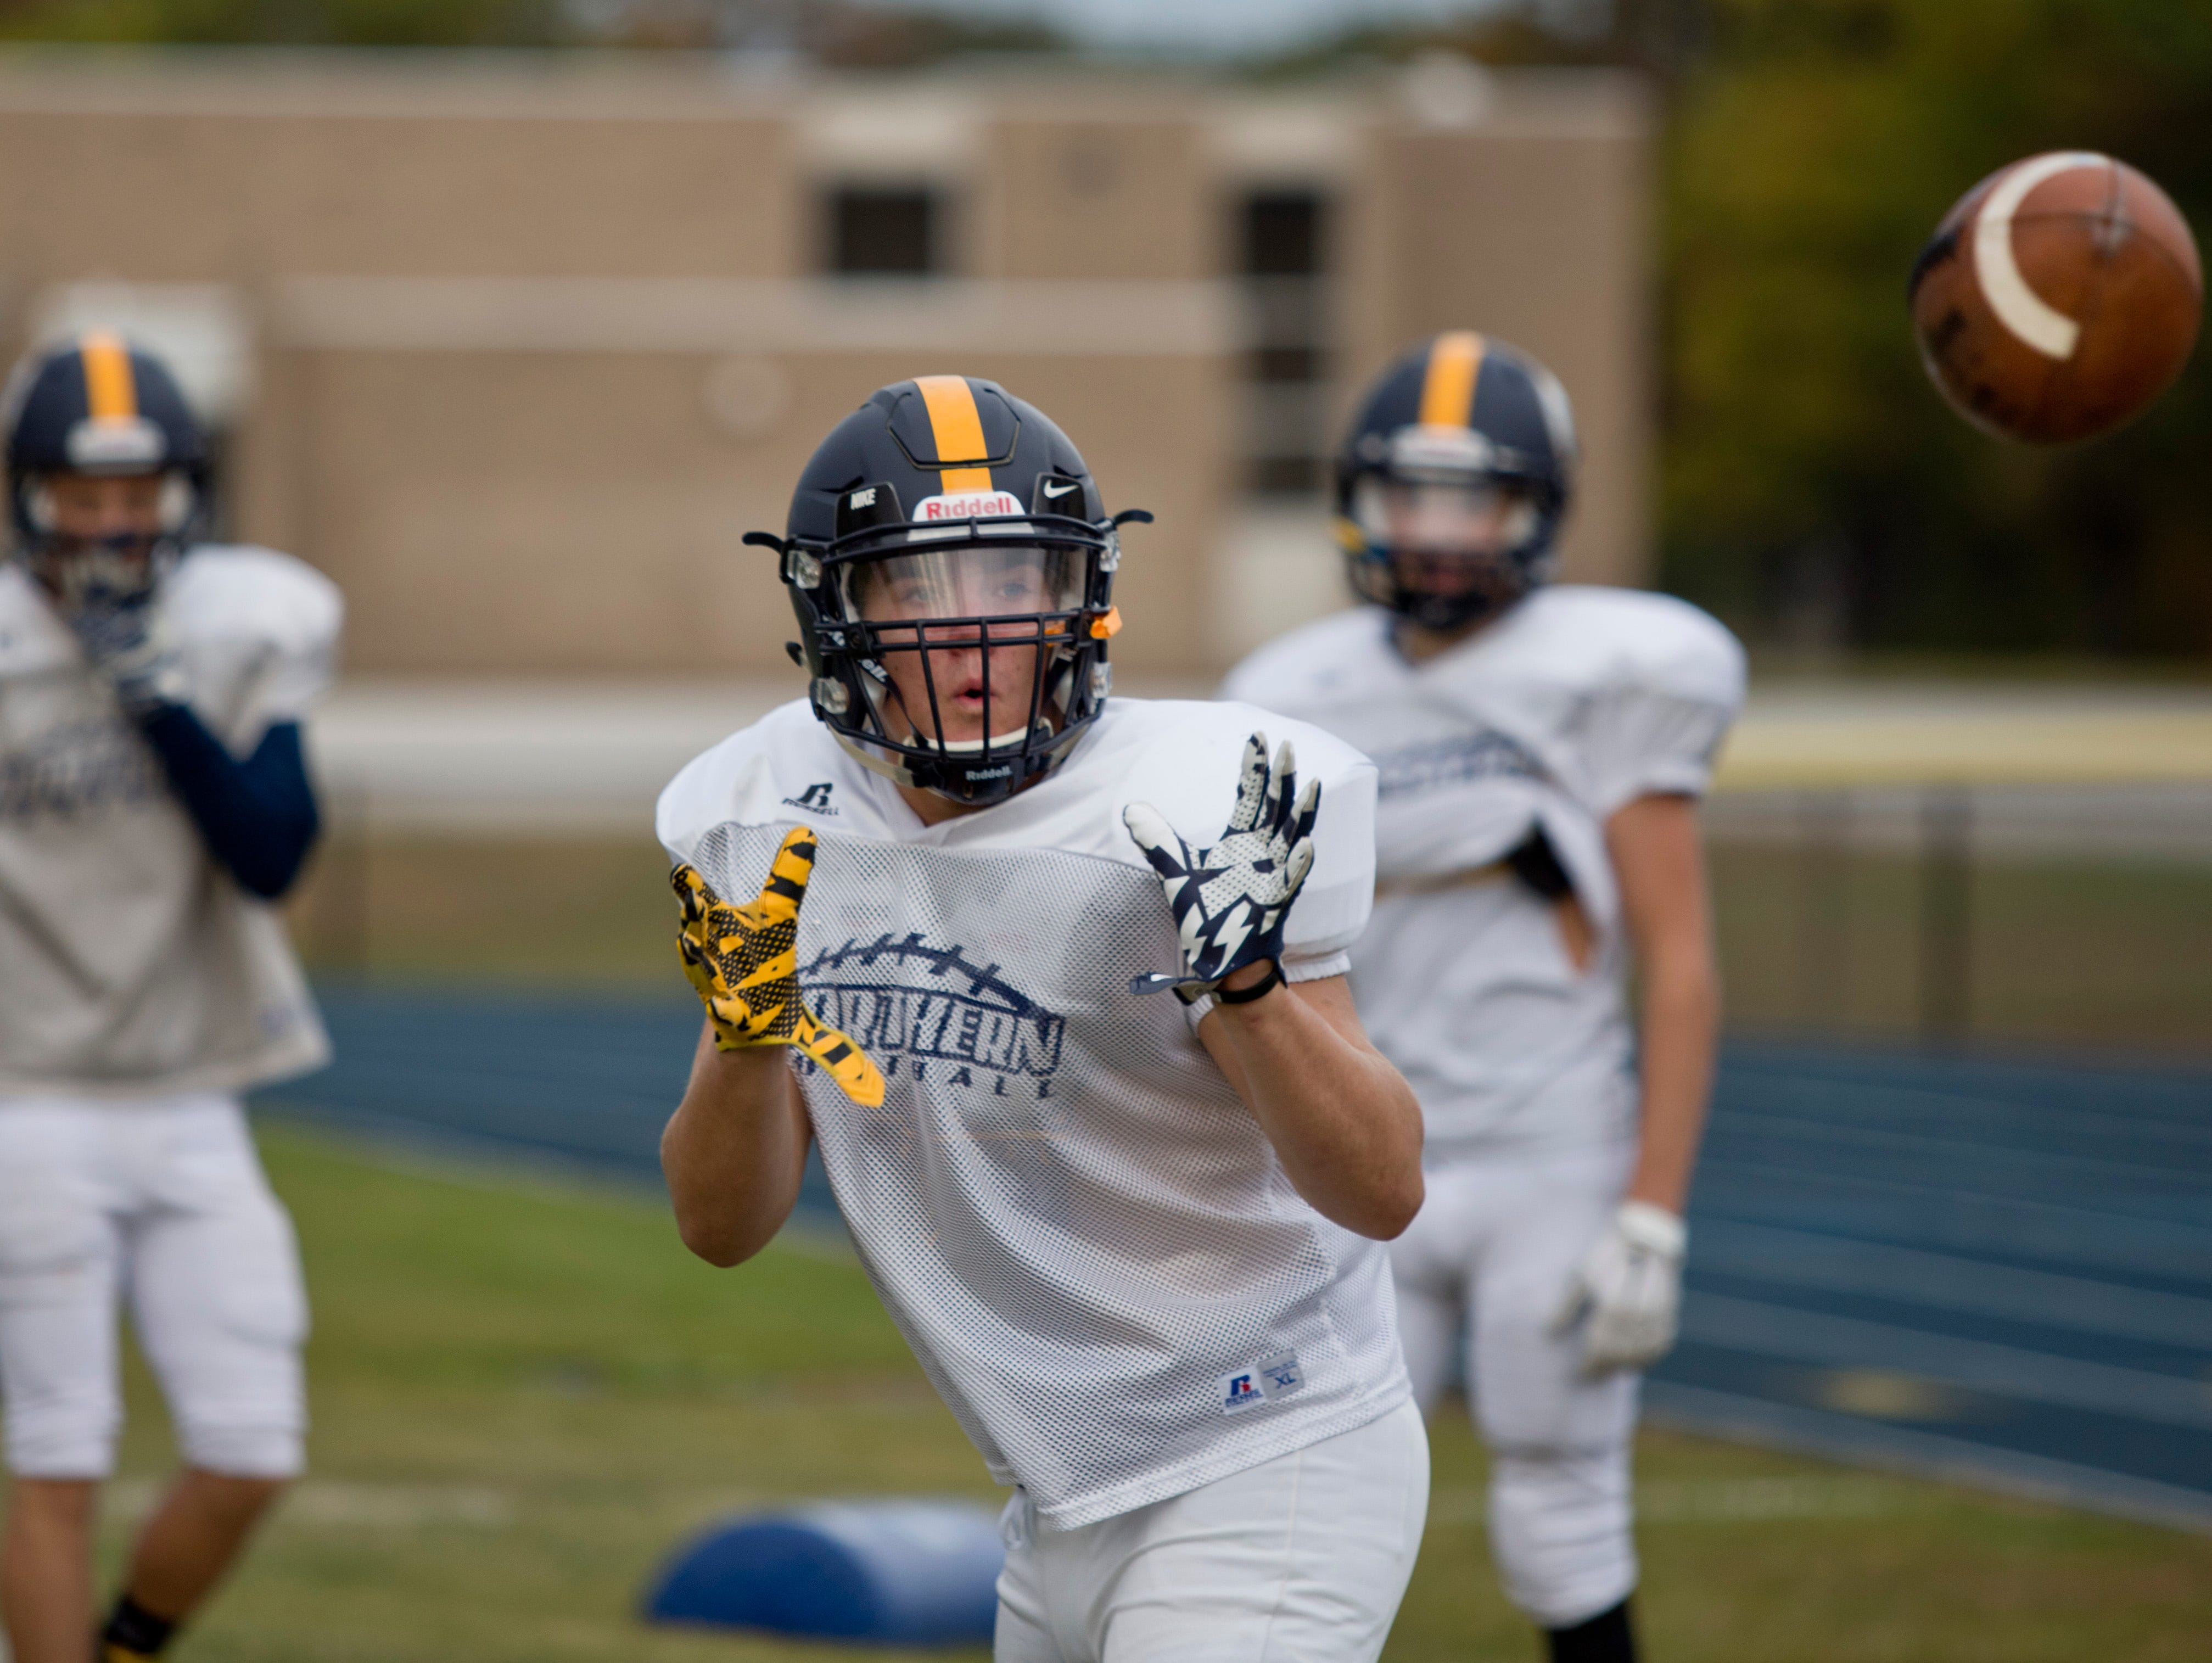 Senior Johnny Wurmlinger catches a pass during practice Wednesday, October 21, 2015 at Port Huron Northern High School.